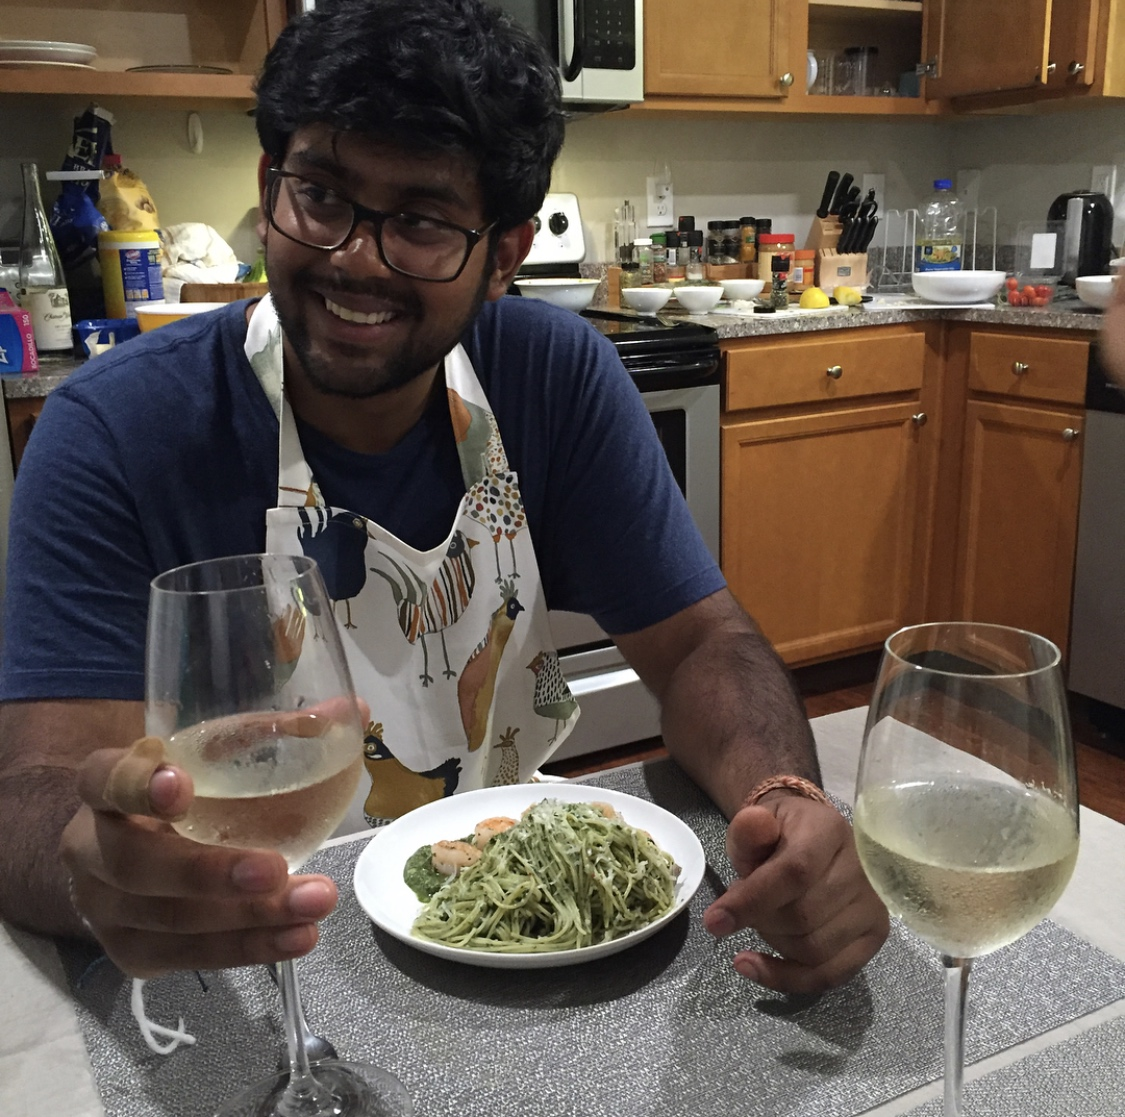 Me cooking pesto pasta with shrimp for my gang at Yen Anh's house